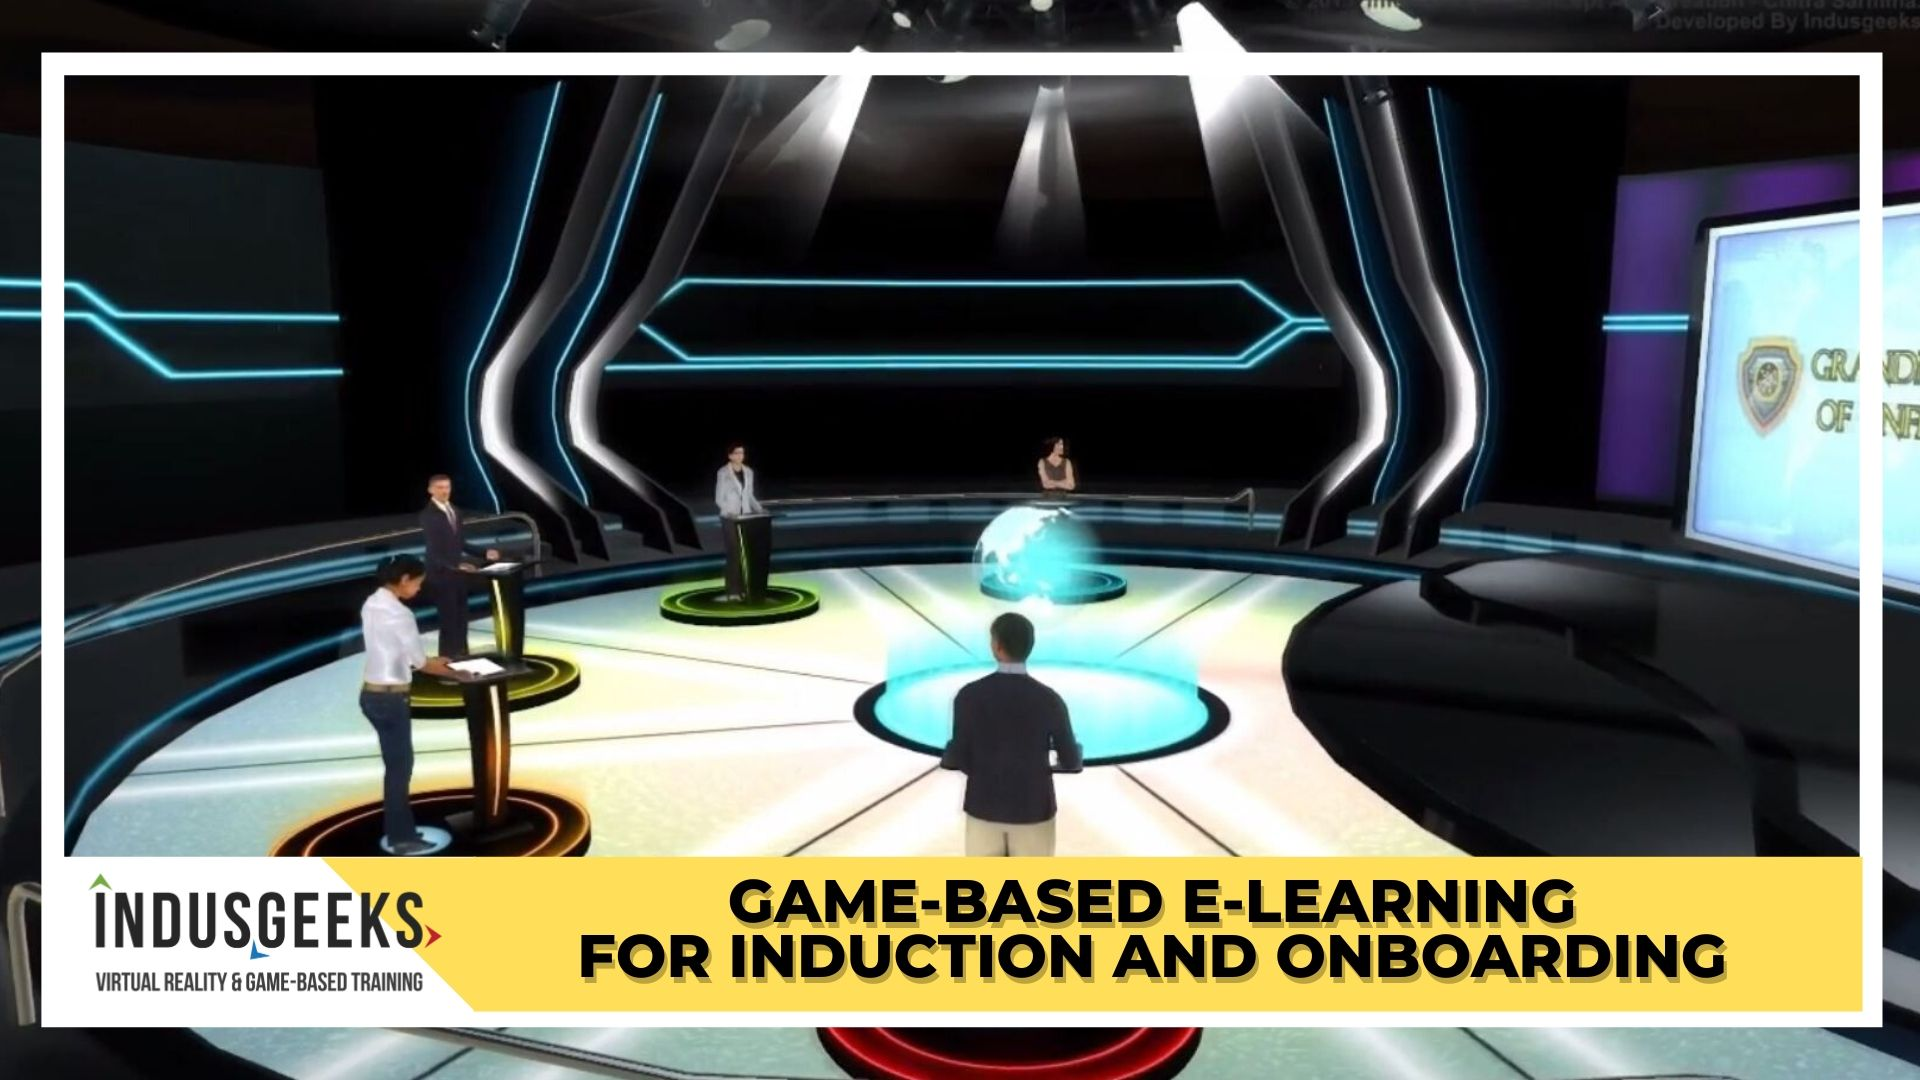 Game-based e-Learning for Induction and onboarding